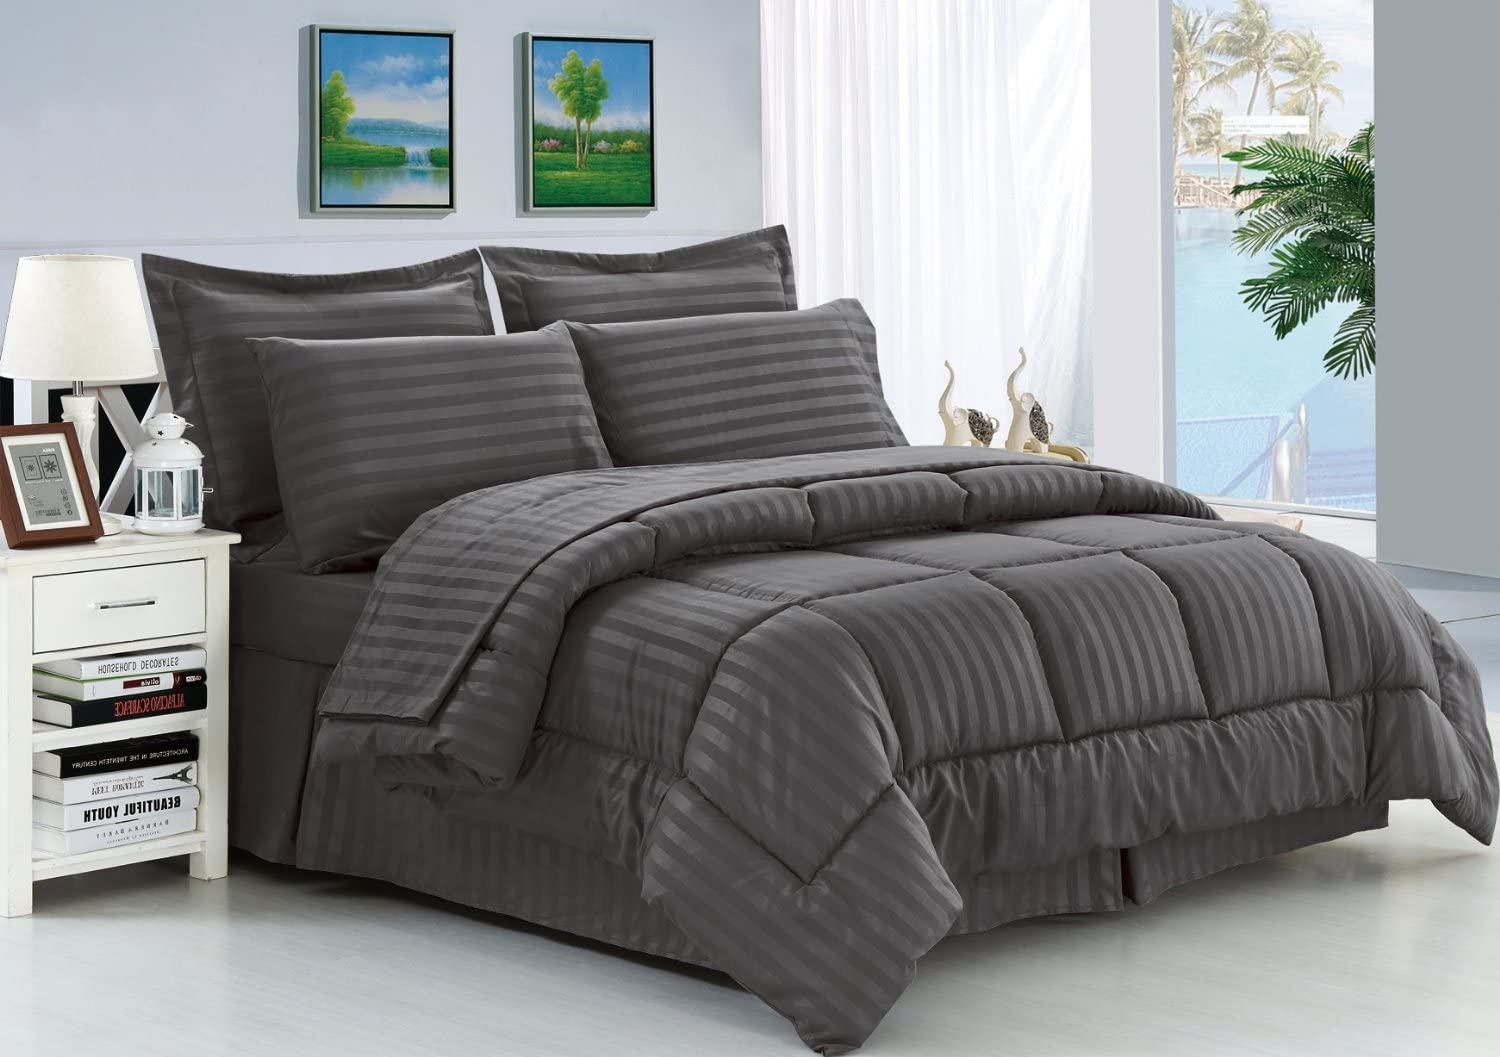 Elegant Comfort Wrinkle Resistant - Silky Soft Dobby Stripe Bed-in-a-Bag 8-Piece Comforter Set -HypoAllergenic - King Grey: Home & Kitchen